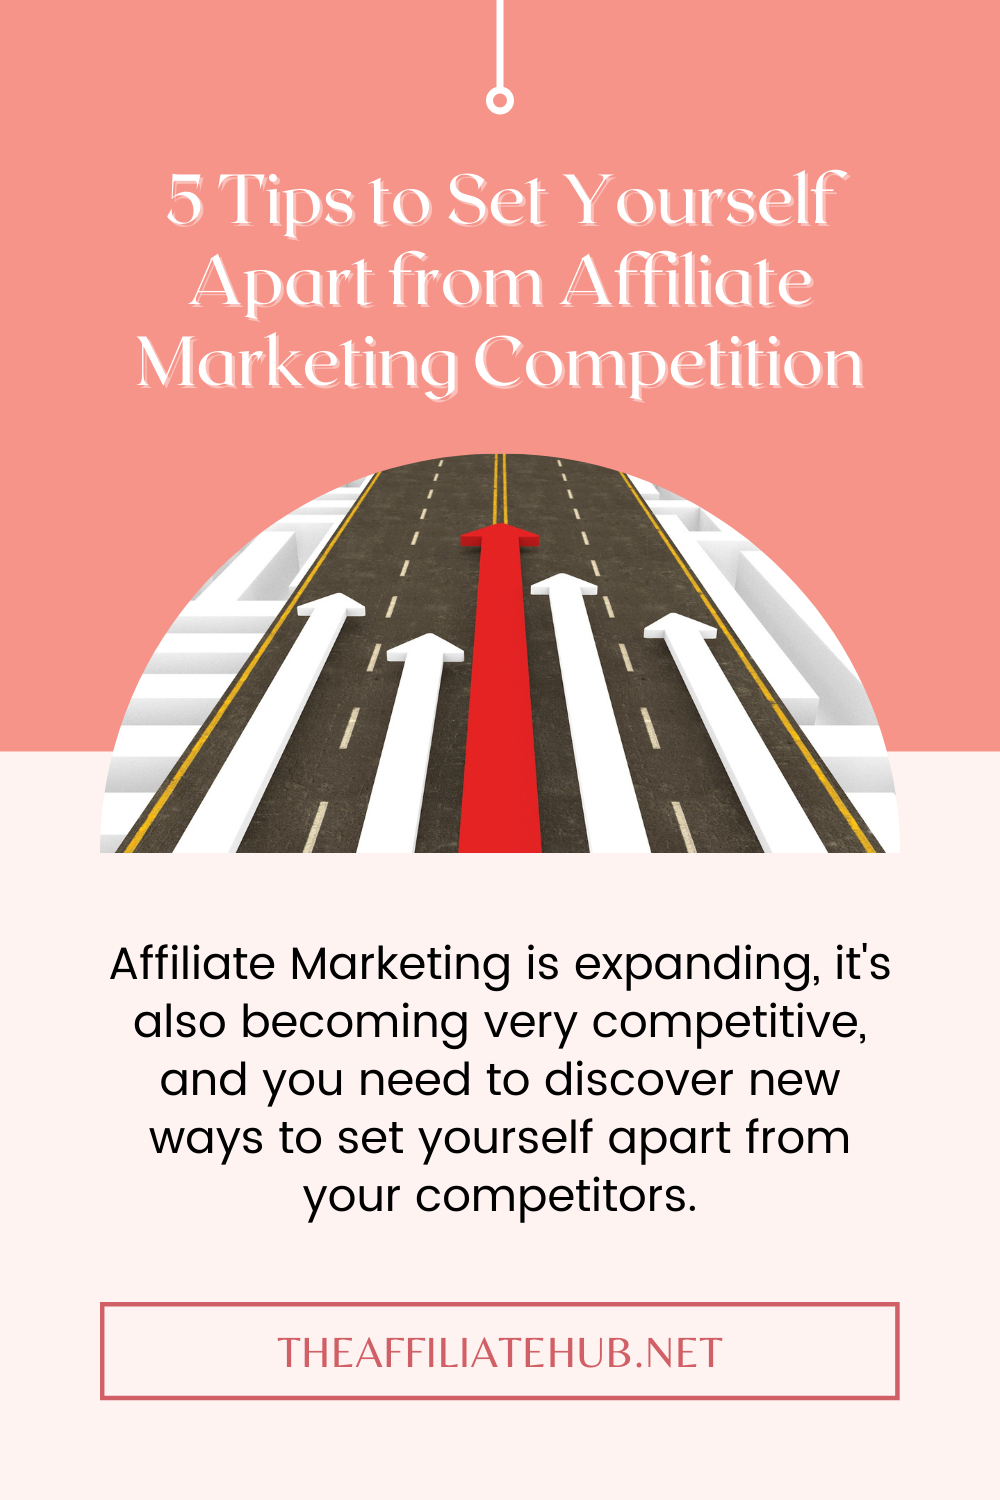 5 Tips to Set Yourself Apart from Affiliate Marketing Competition - 5 Tips to Set Yourself Apart from Affiliate Marketing Competition